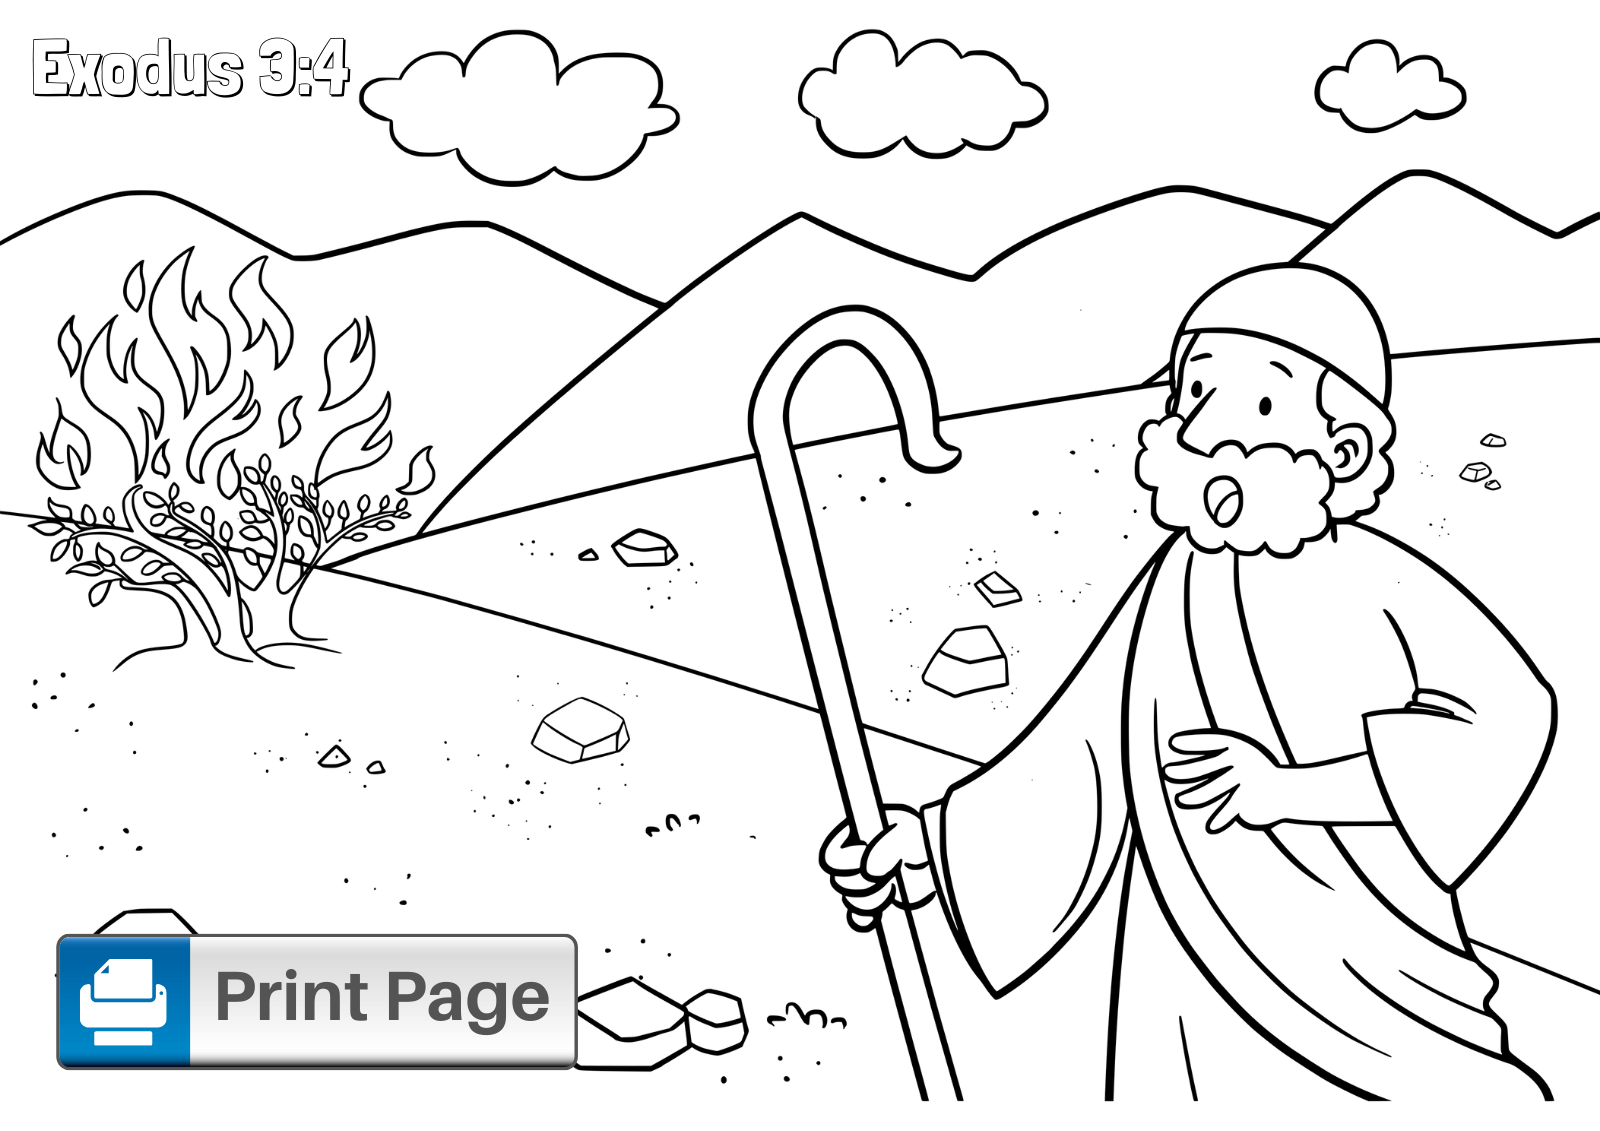 Free Moses And The Burning Bush Coloring Pages Connectus